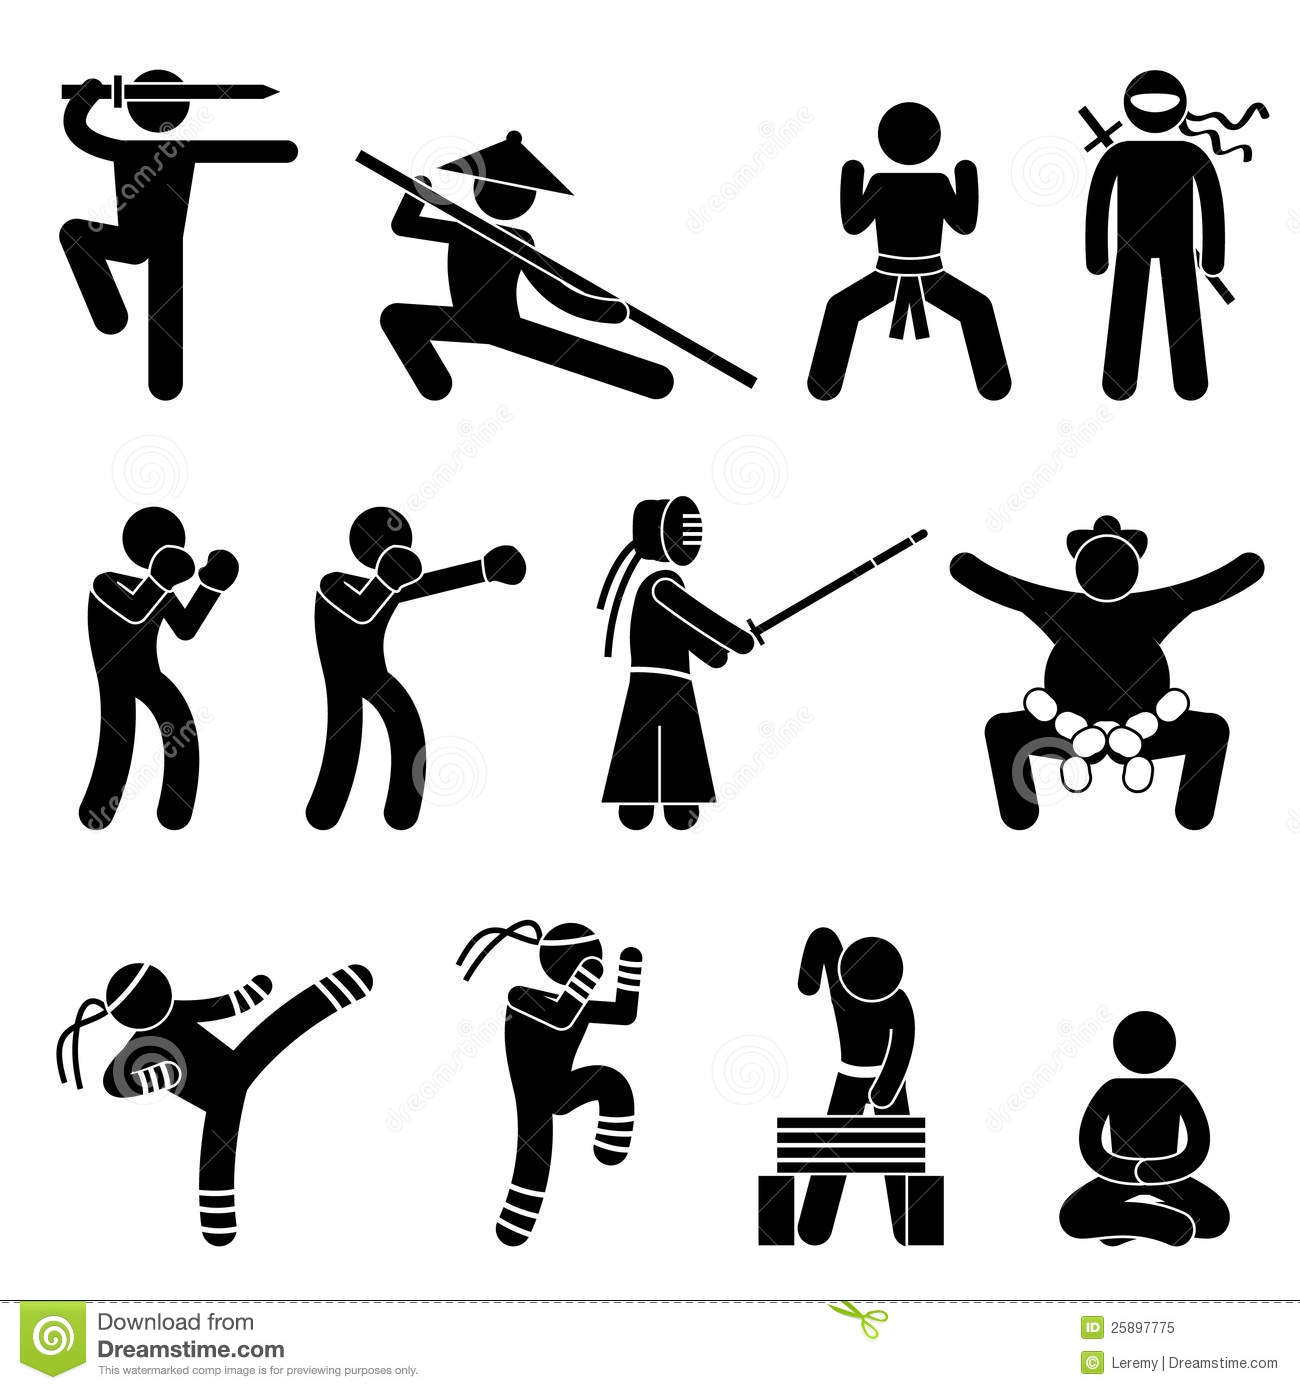 Kung Fu Martial Arts Self Defense Pictogram Royalty Free